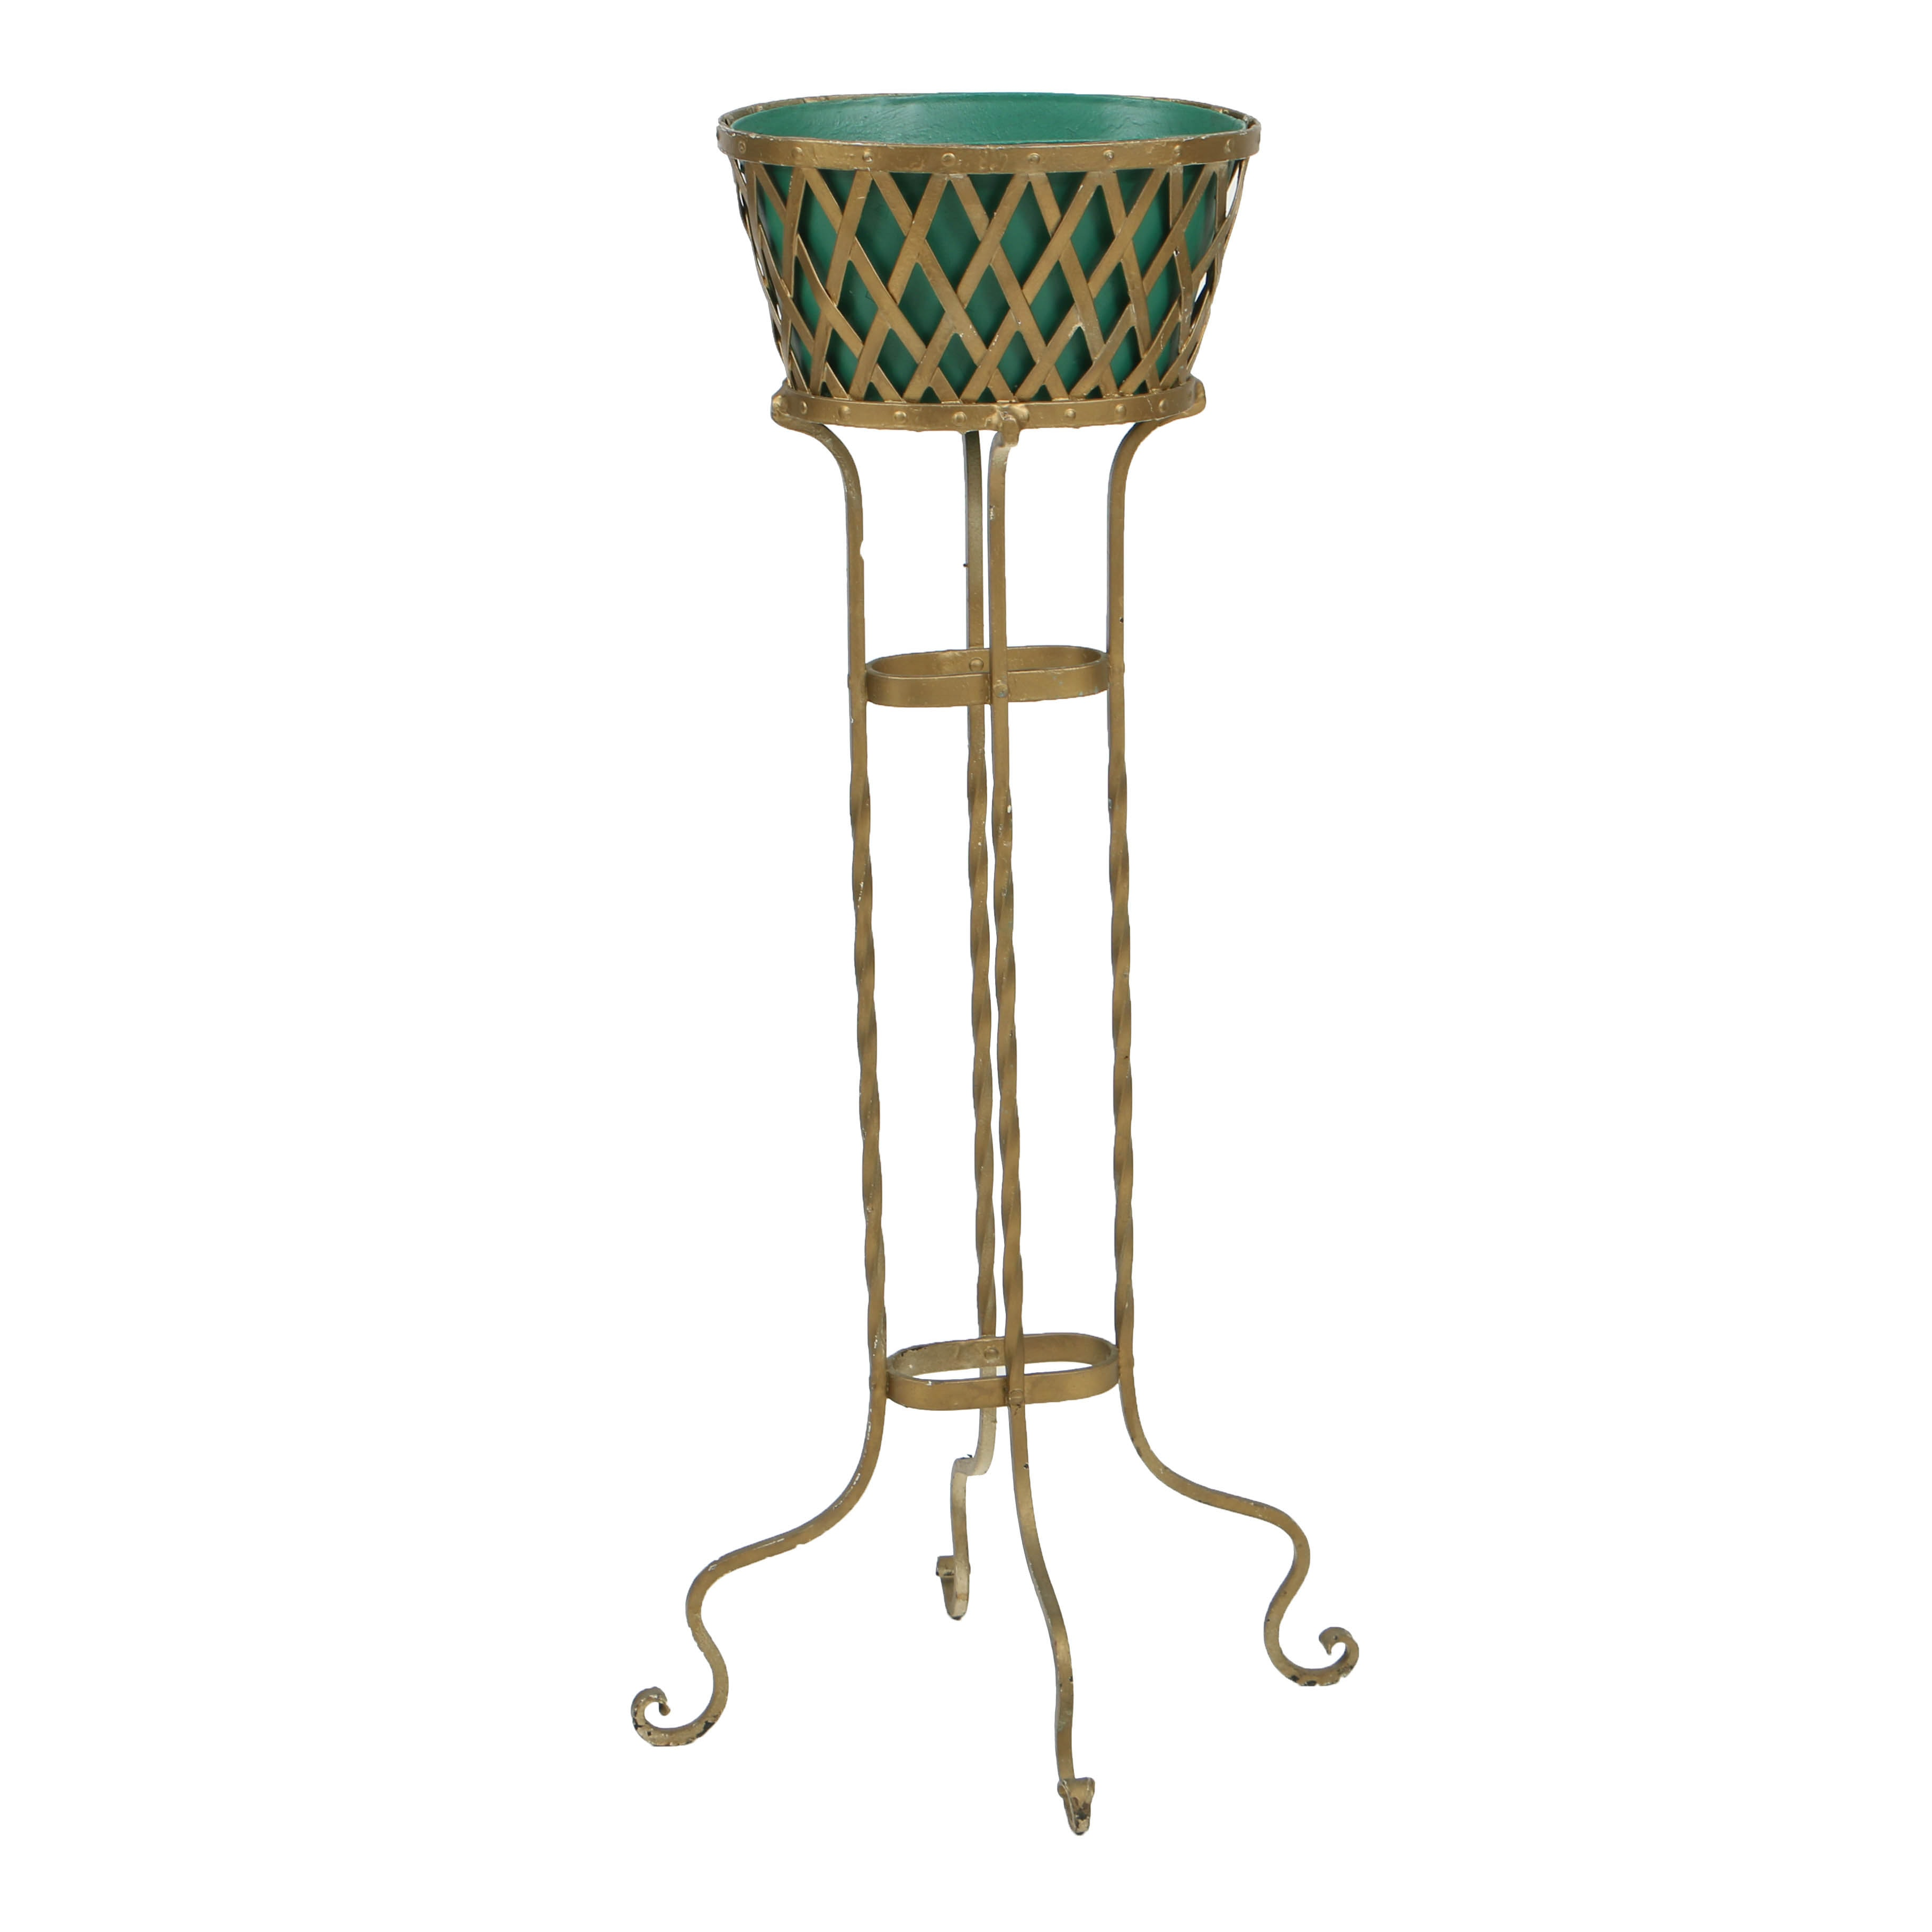 Vintage Wrought Iron Plant Stand with Insert, Circa Second Quarter 20th Century